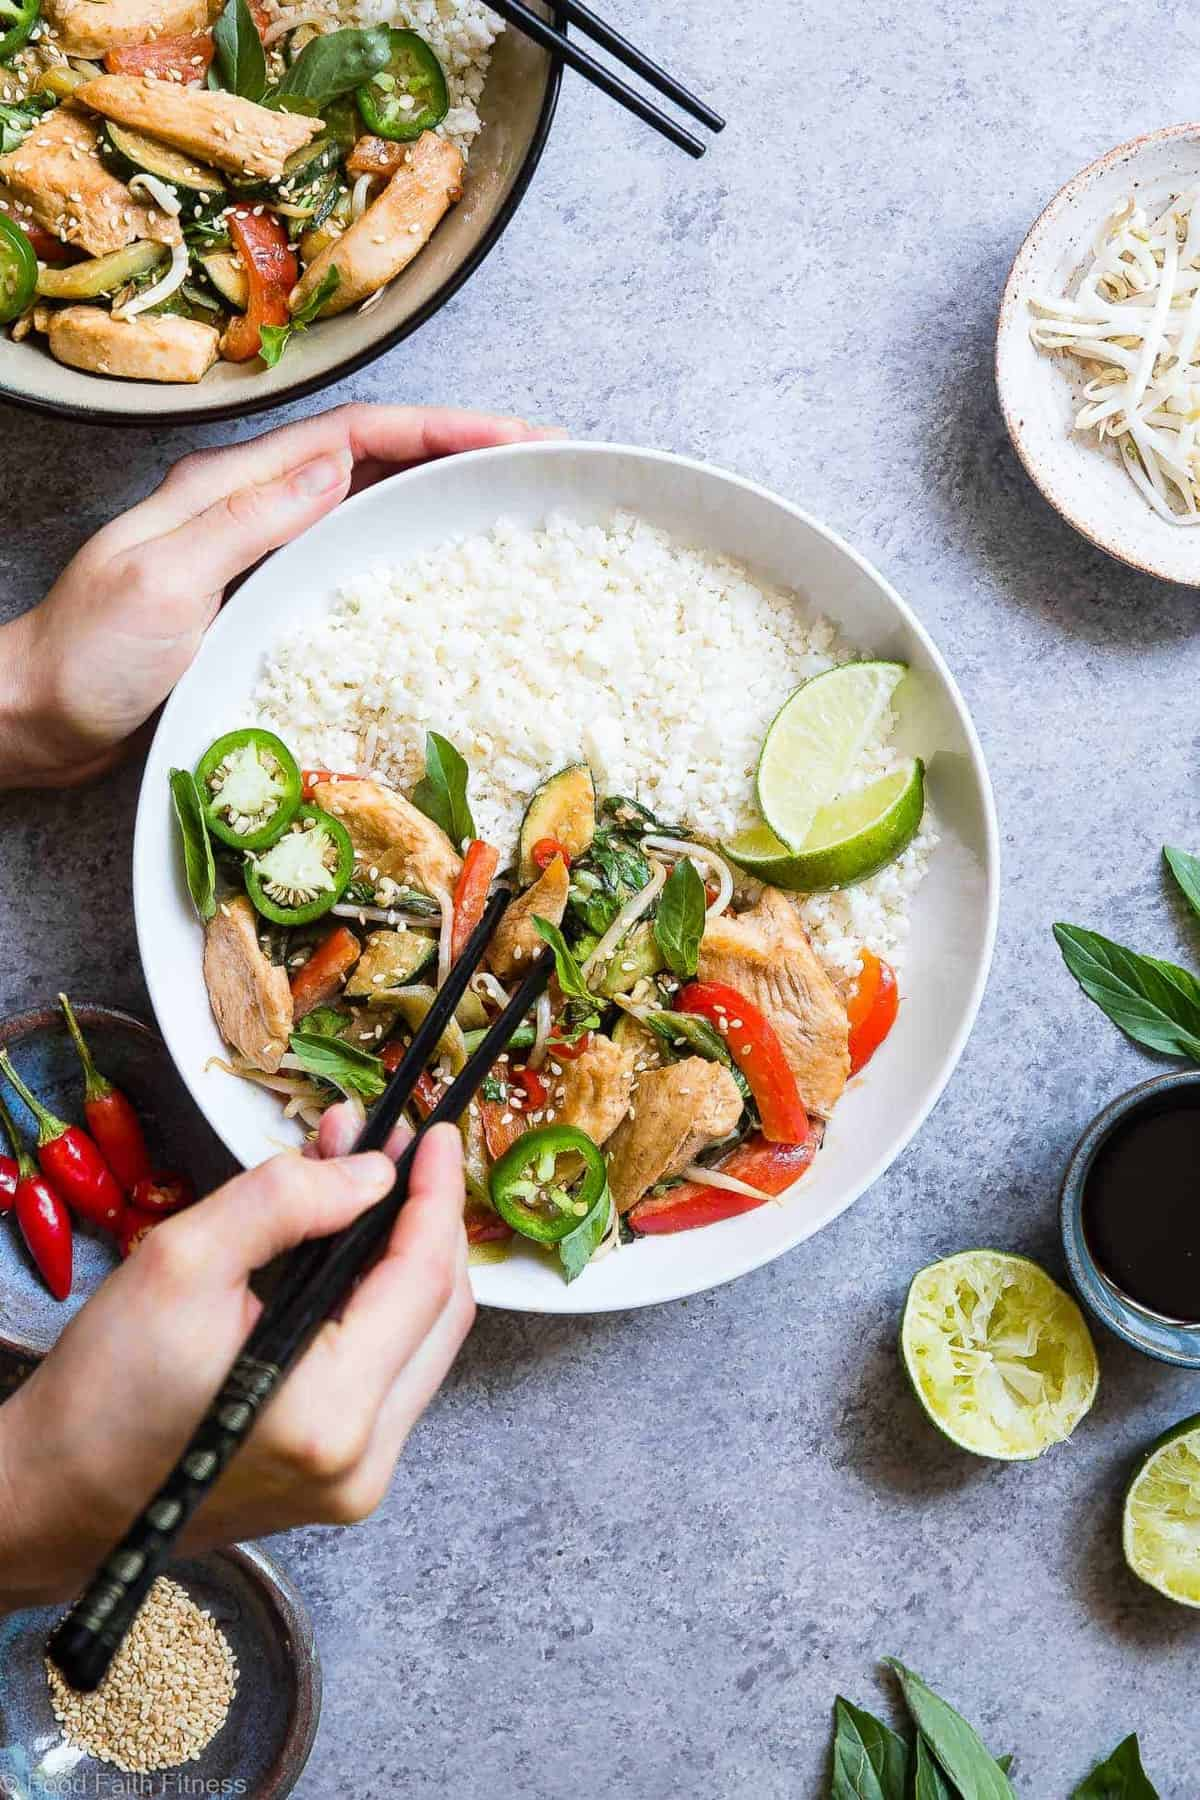 Spicy Thai Basil Chicken Stir Fry - This Thai chicken with basil stir fry is a 20 minute, healthy, gluten free dinner that is paleo friendly, lower carb and only 300 calories! It will be your new go to weeknight meal! | #Foodfaithfitness | #Glutenfree #Paleo #Lowcarb #Healthy #DairyFree